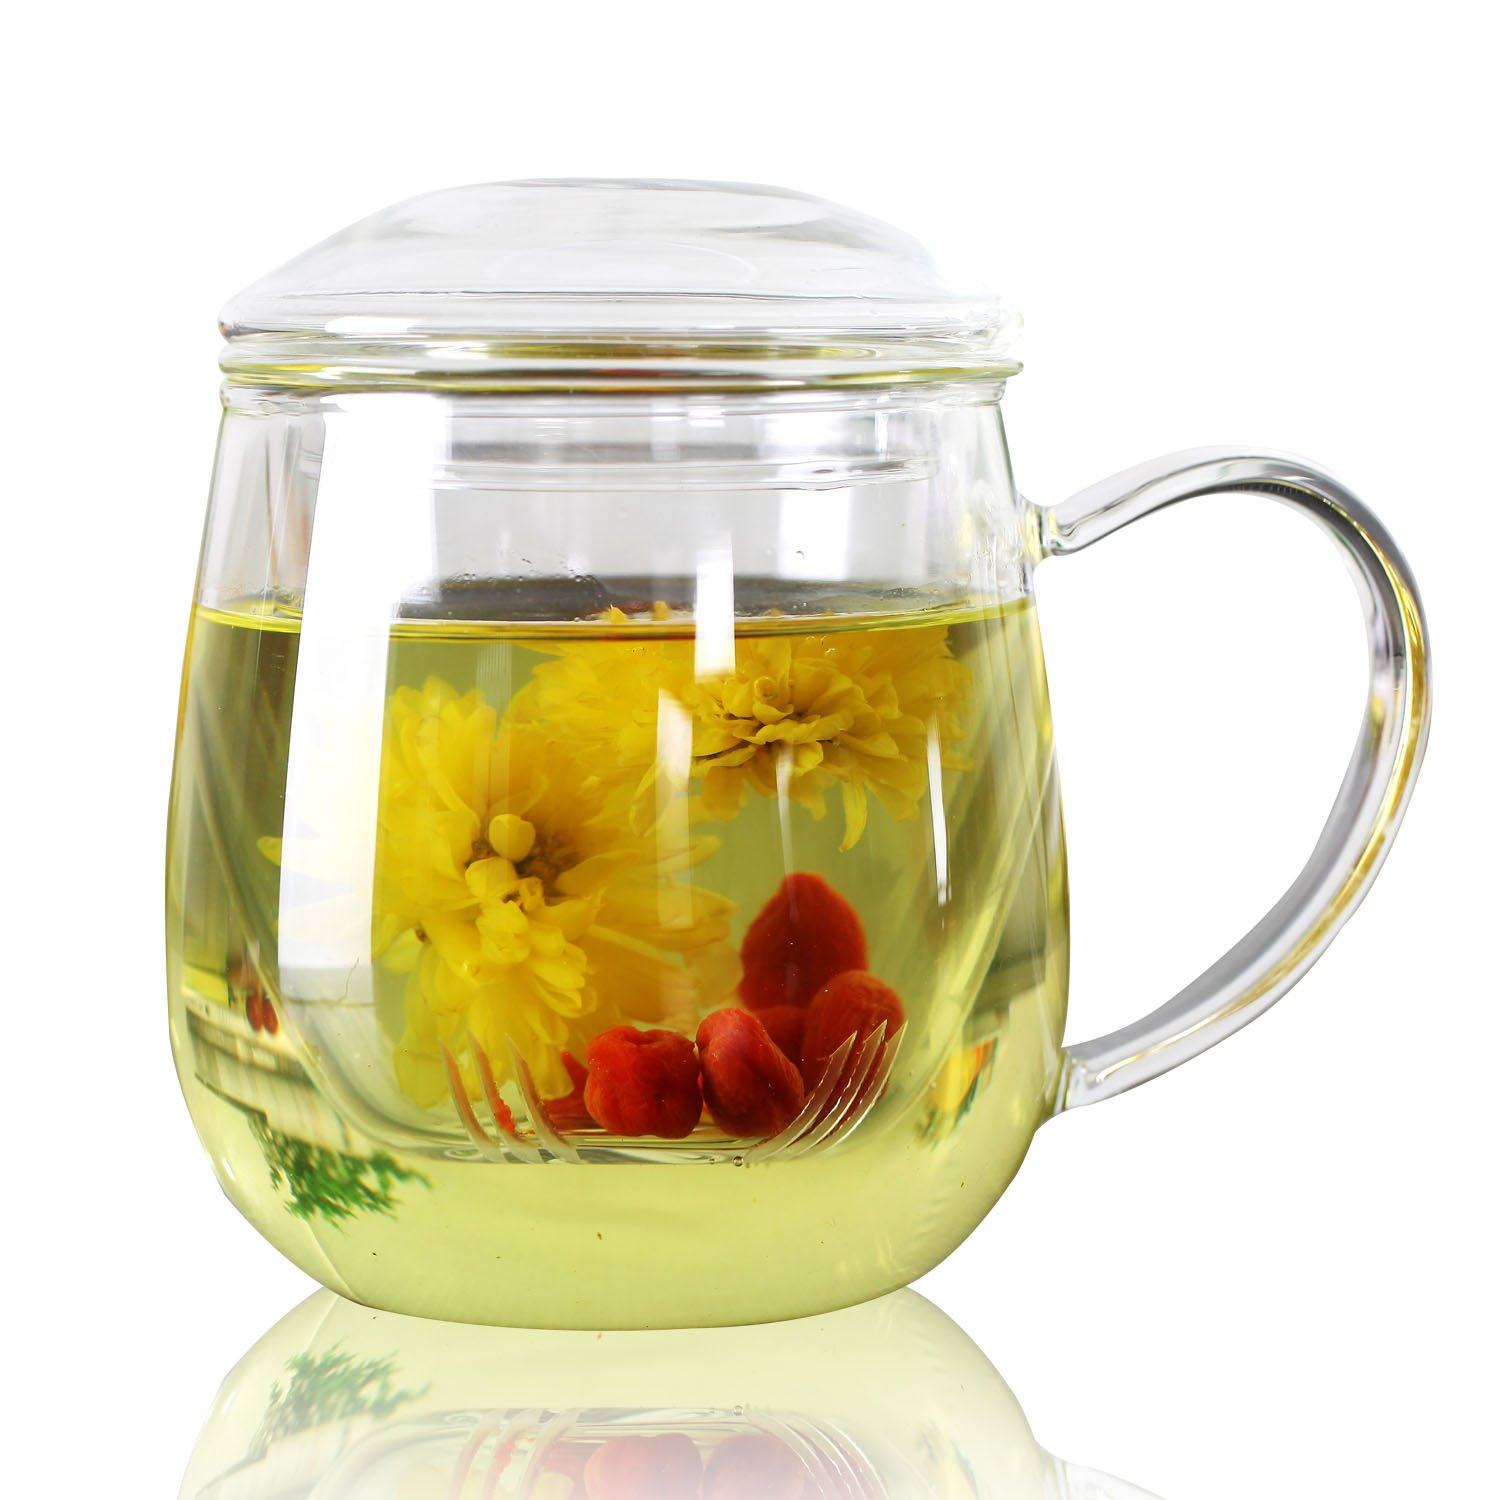 Cupwind 20 oz Thickened Heat-Resistant Borosilicate Glass Teapot Office Tea Tile Filtration Cup Tea-For-One Set with Lid Stovetop Safe